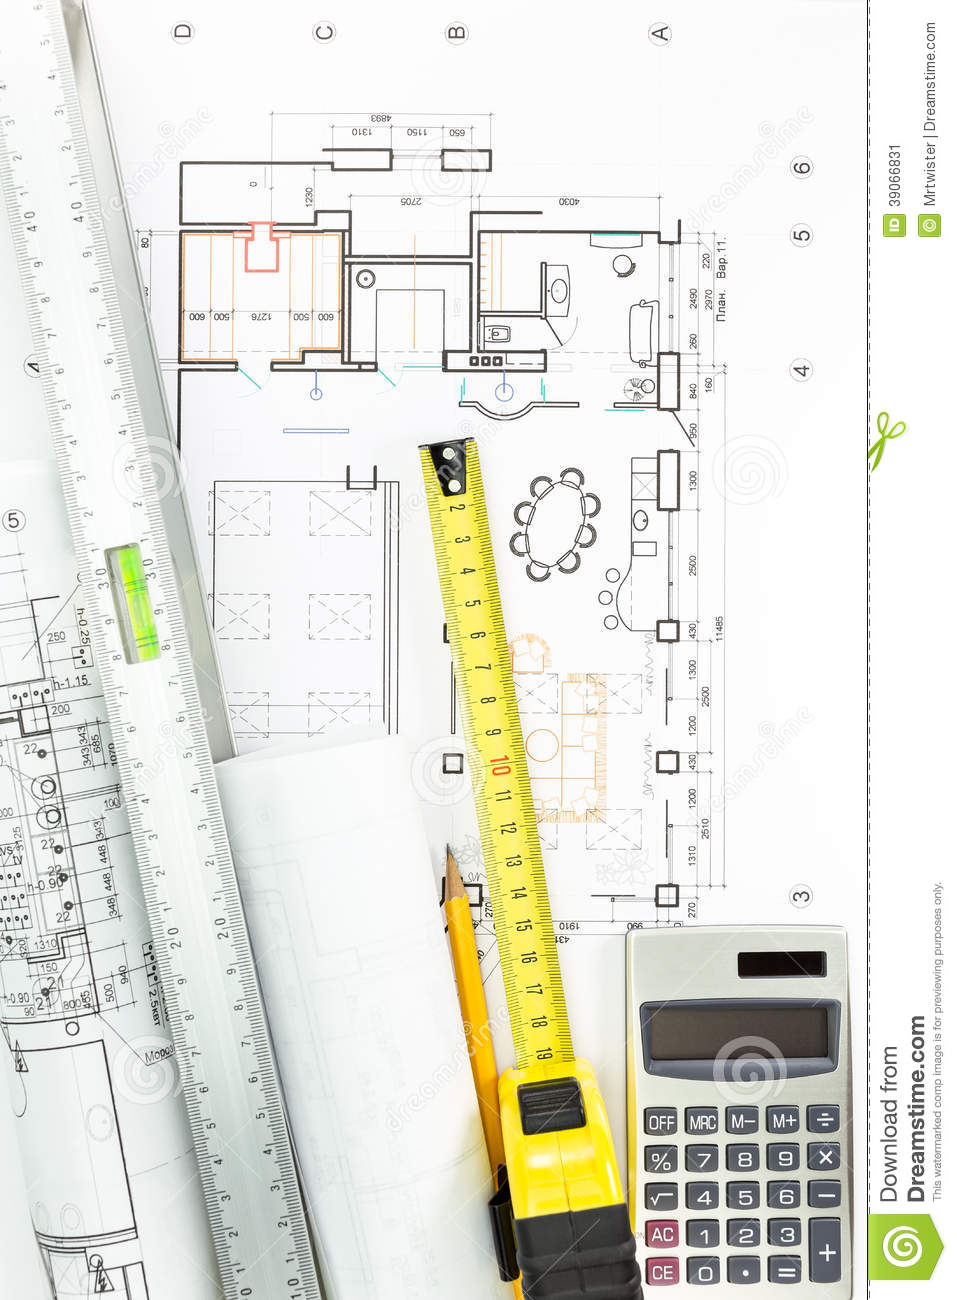 Architectural drawing detail and measurement tools stock for House construction plans